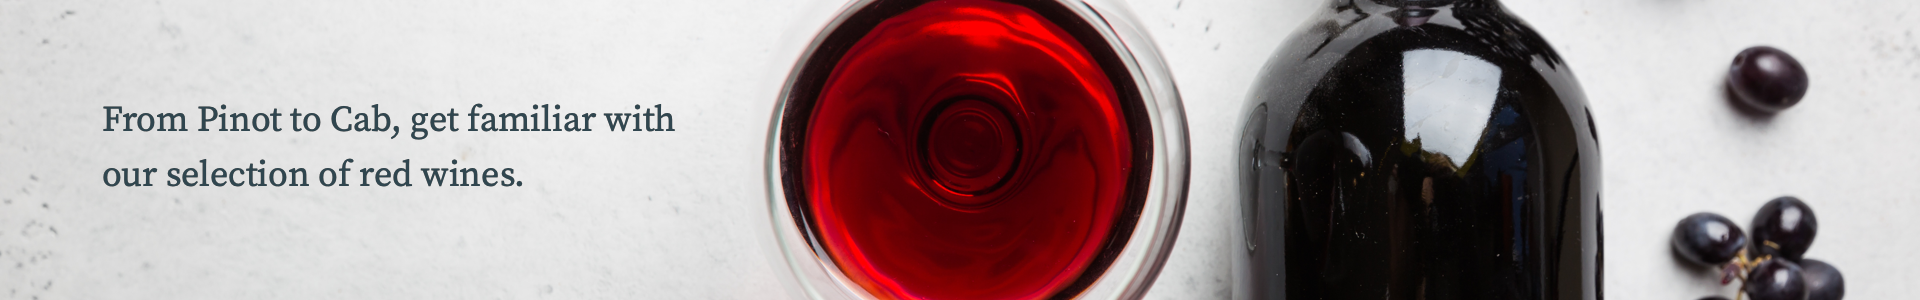 From Pinot to Cab, get familiar with our selection of red wines.